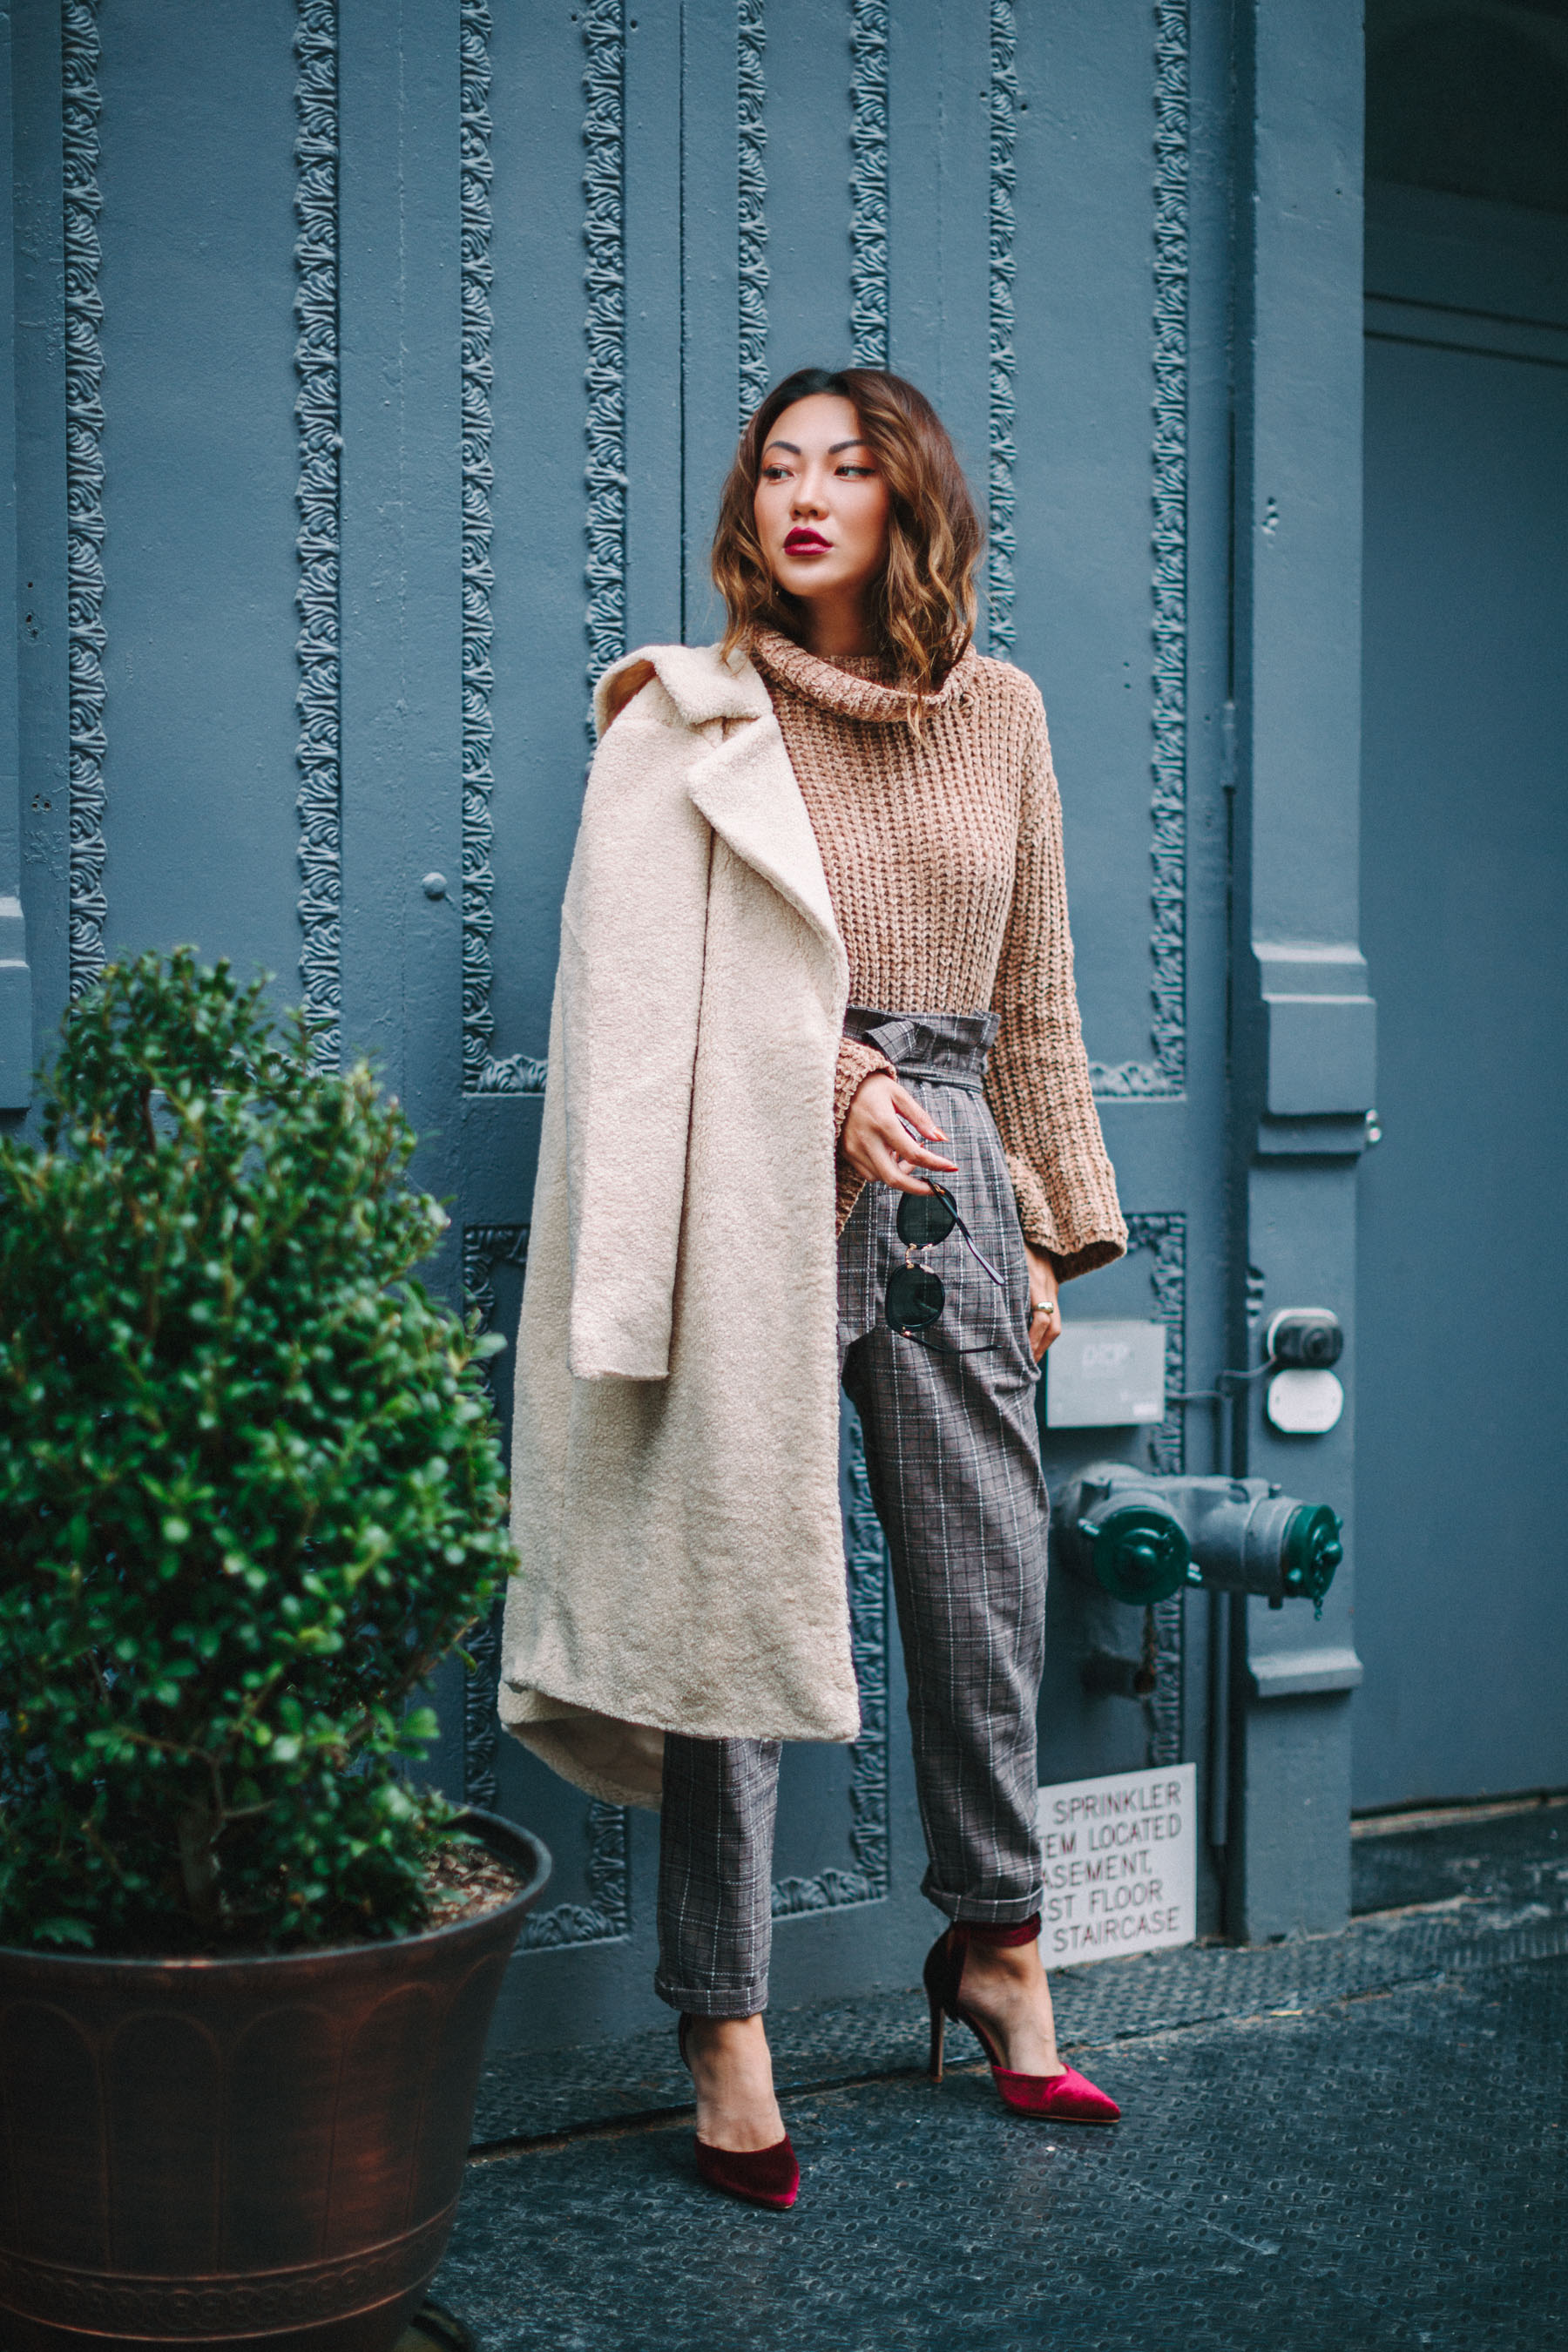 TEXTURED COATS TO TRY THIS WINTER // Notjessfashion.com